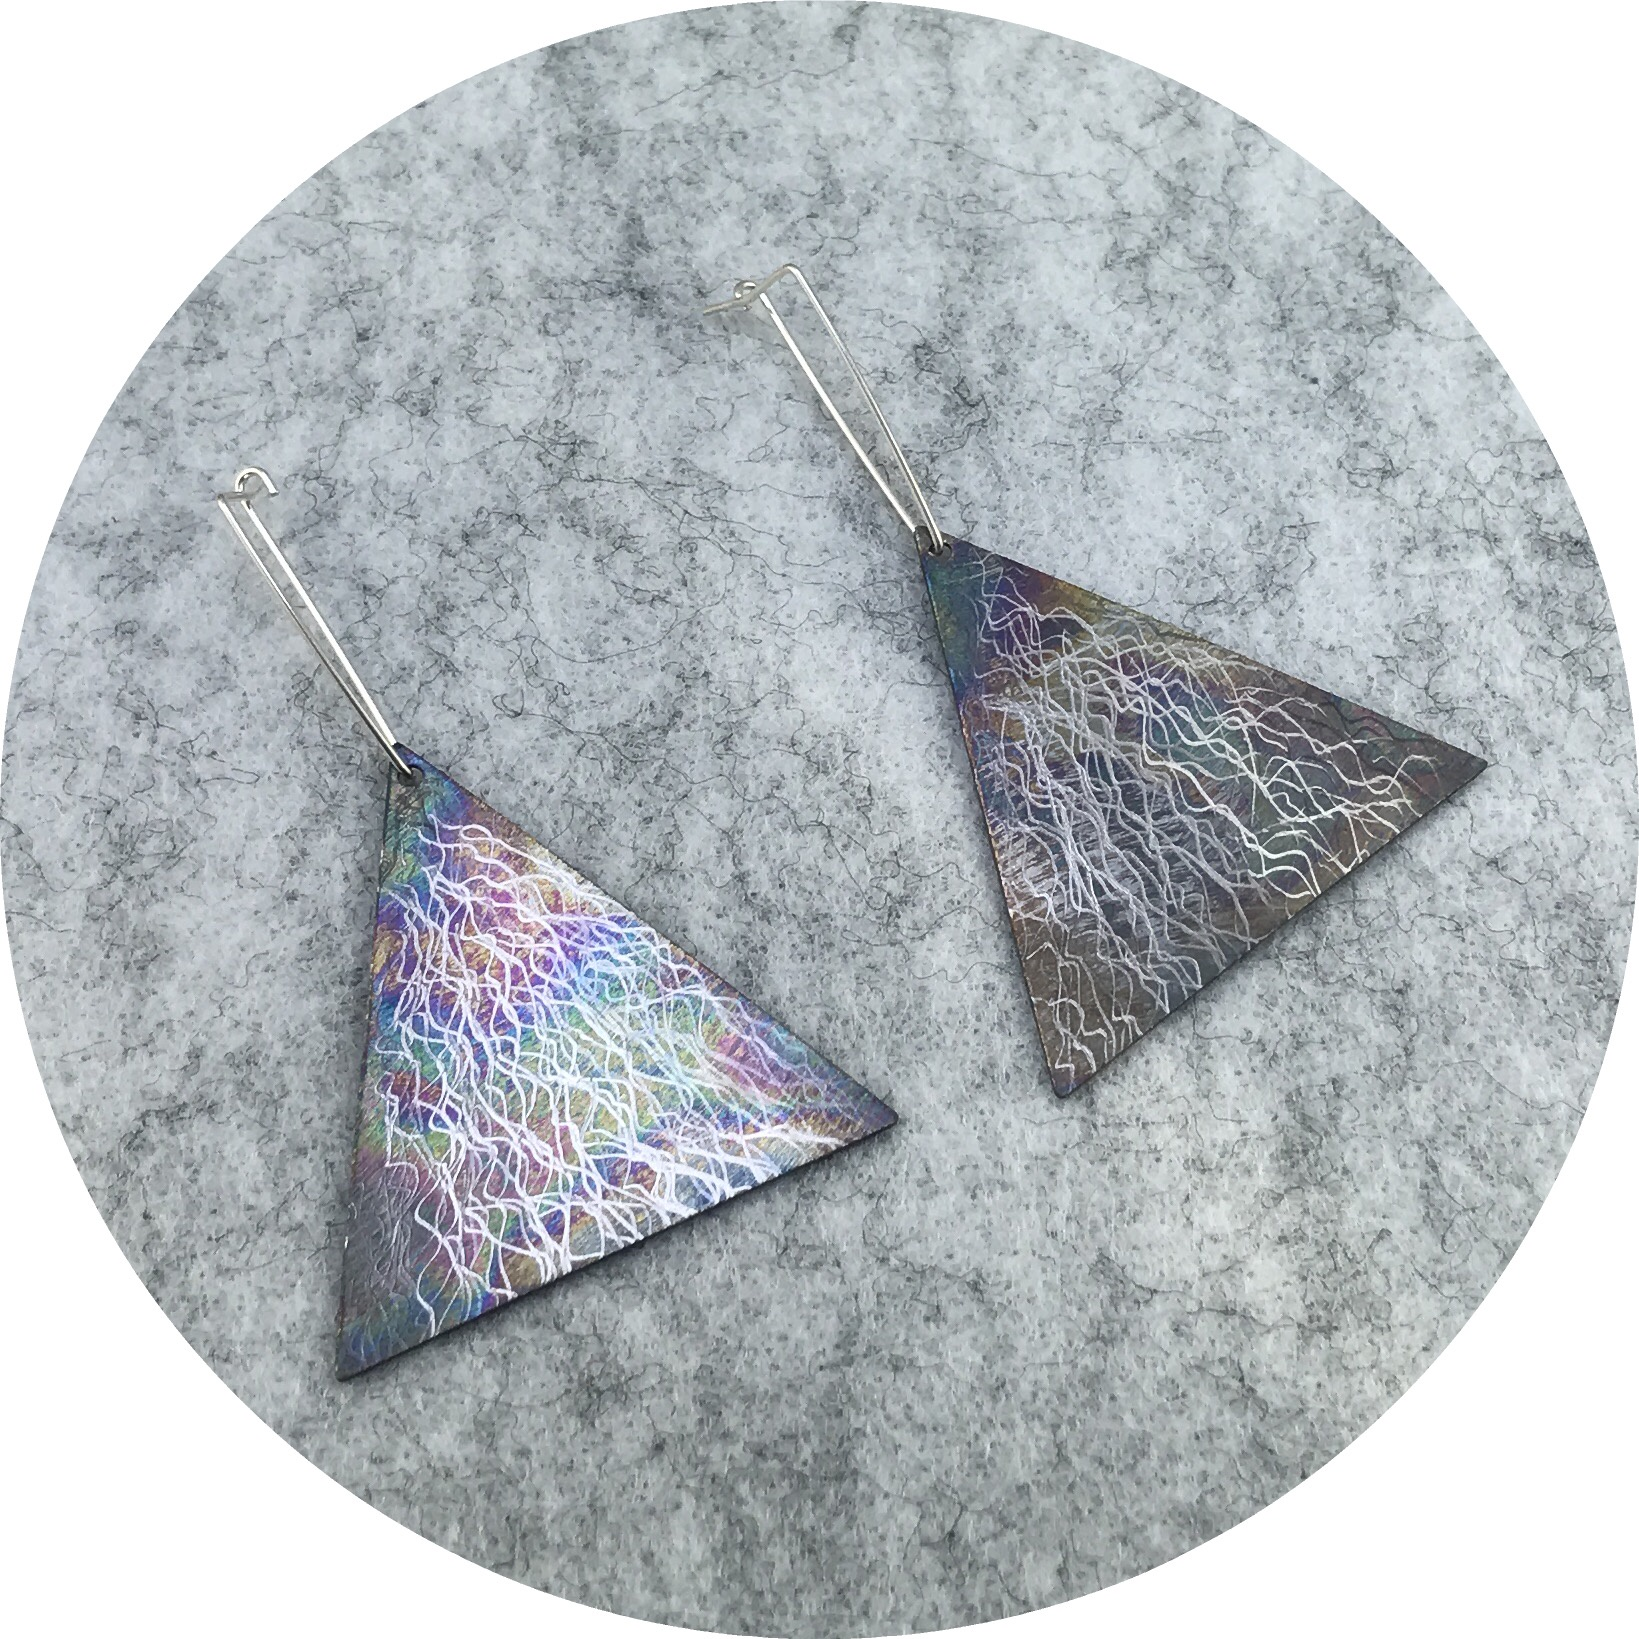 Tanja Von Behrens - Large Triangle Lighting Storm Earrings in Sterling Silver and Heat Coloured Titanium